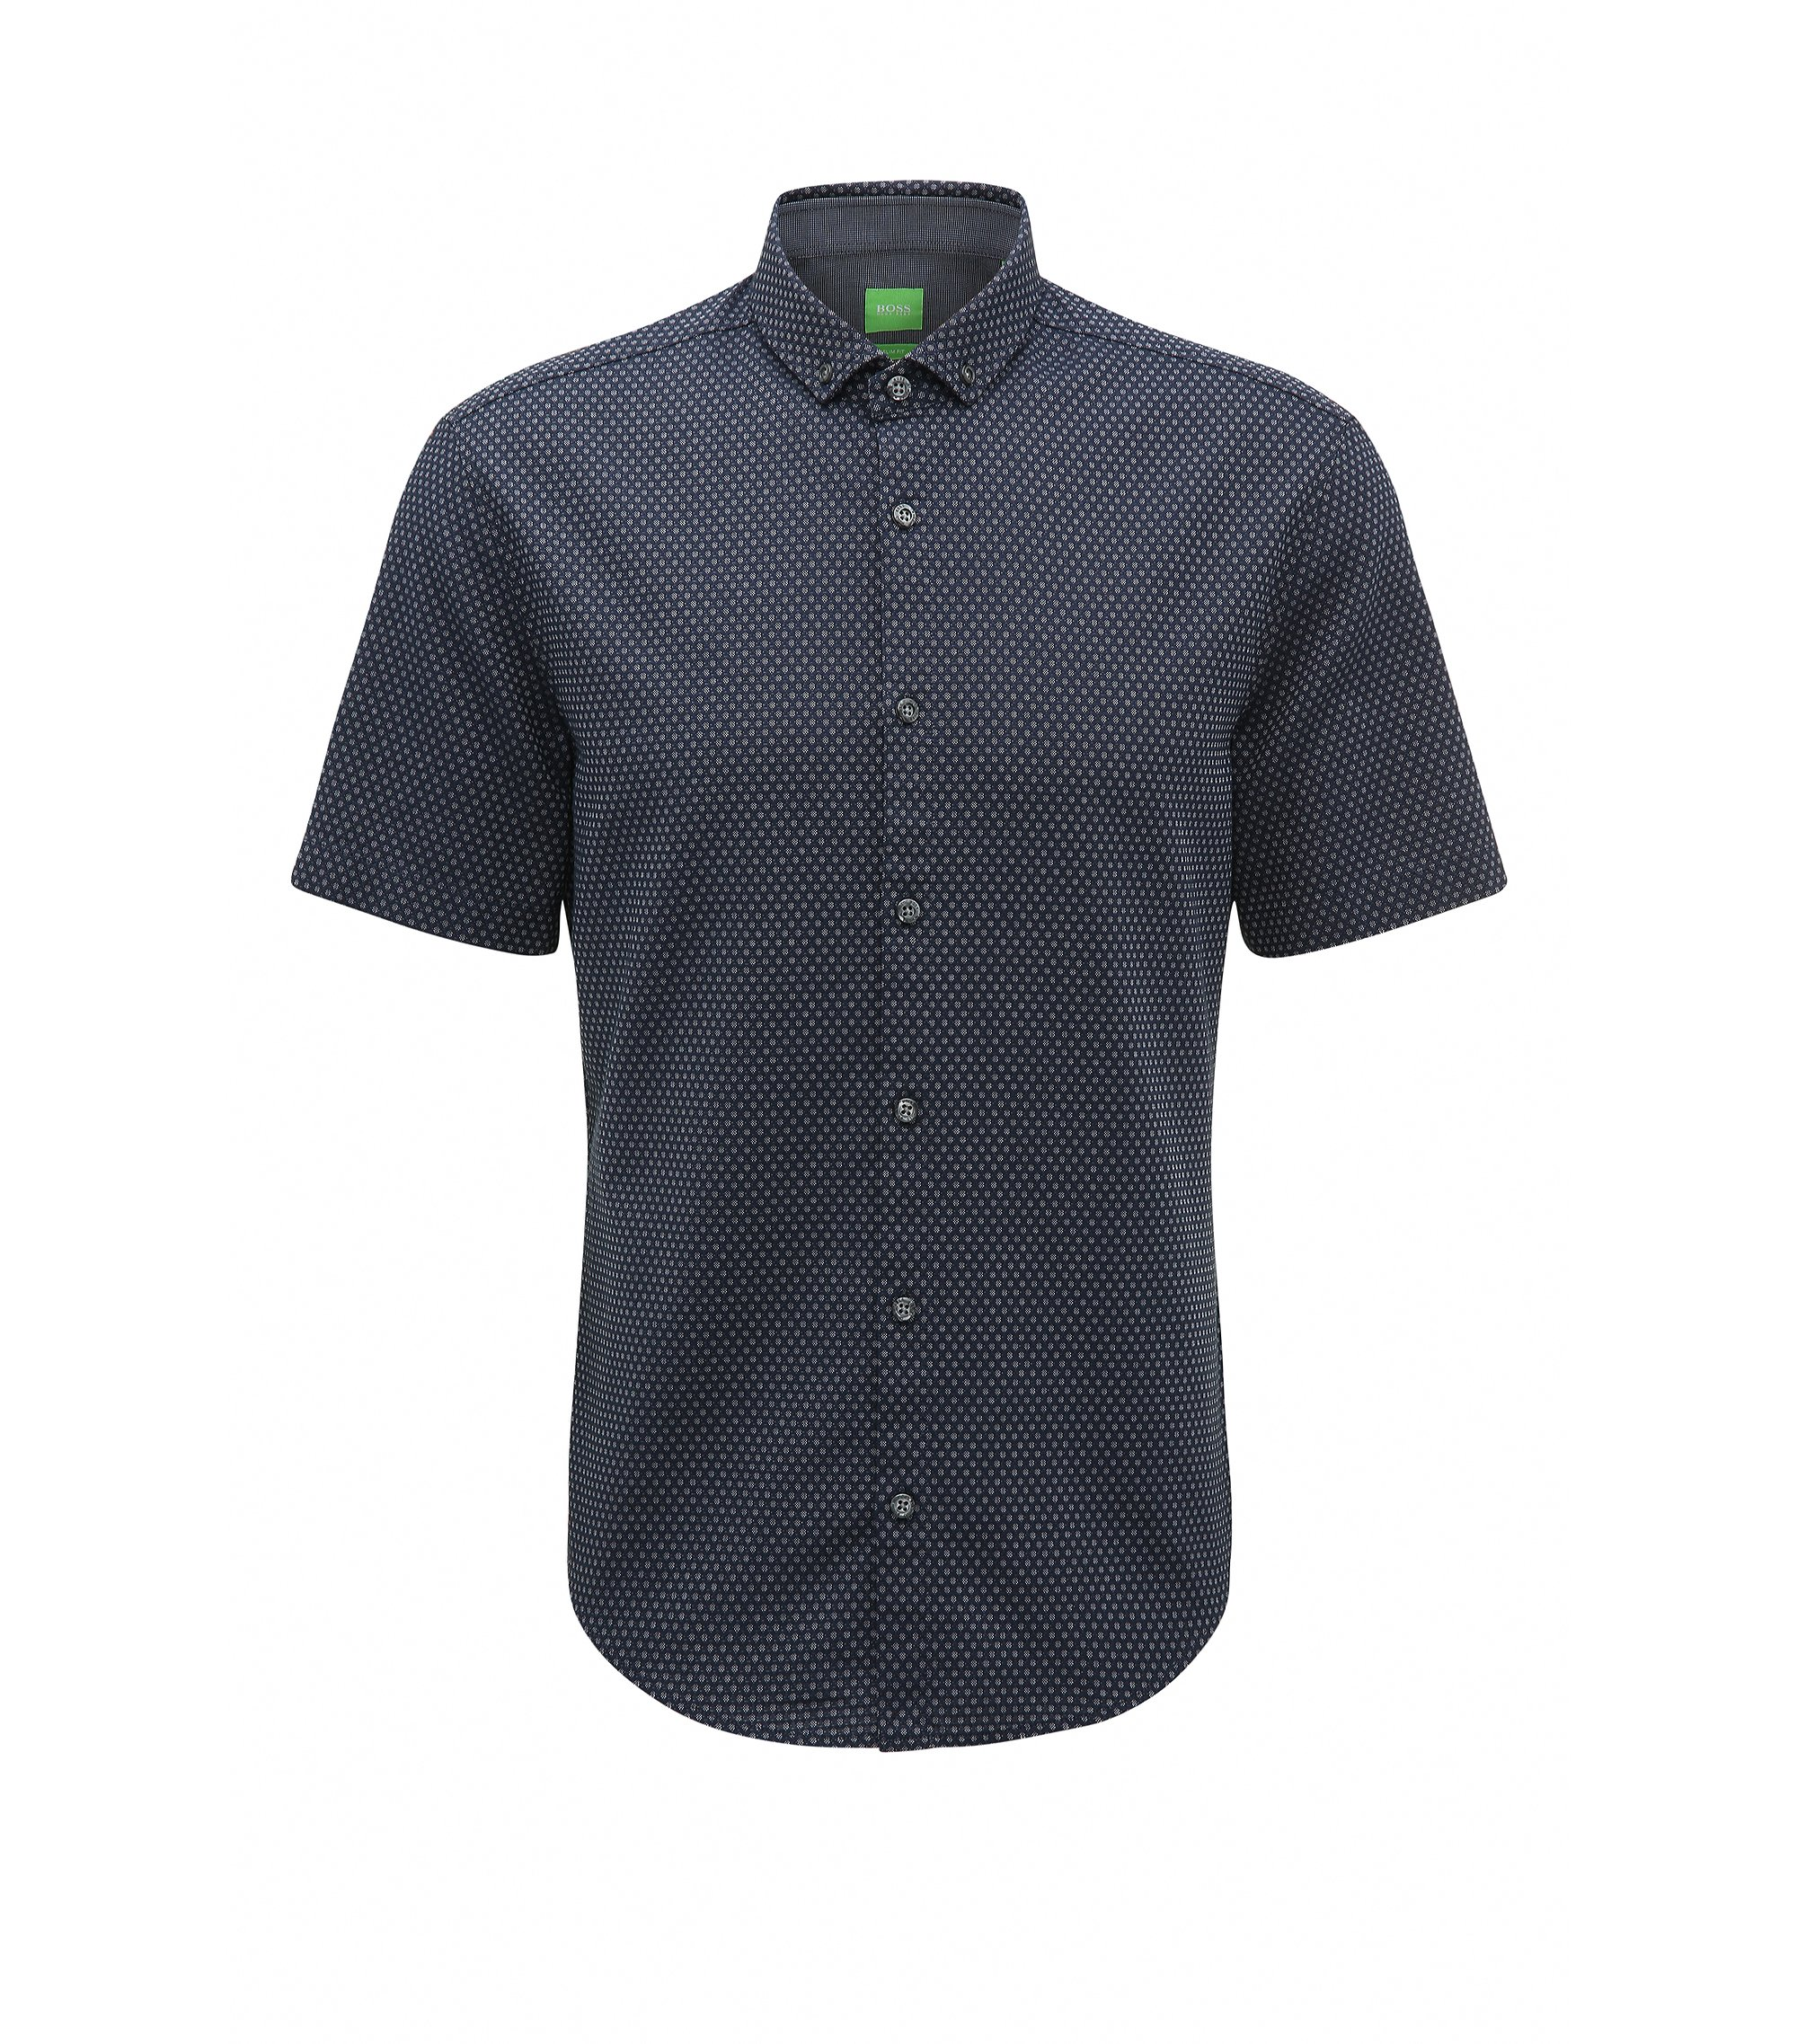 Birdseye Cotton Button-Down Shirt, Slim Fit | C-Bonettino, Dark Blue